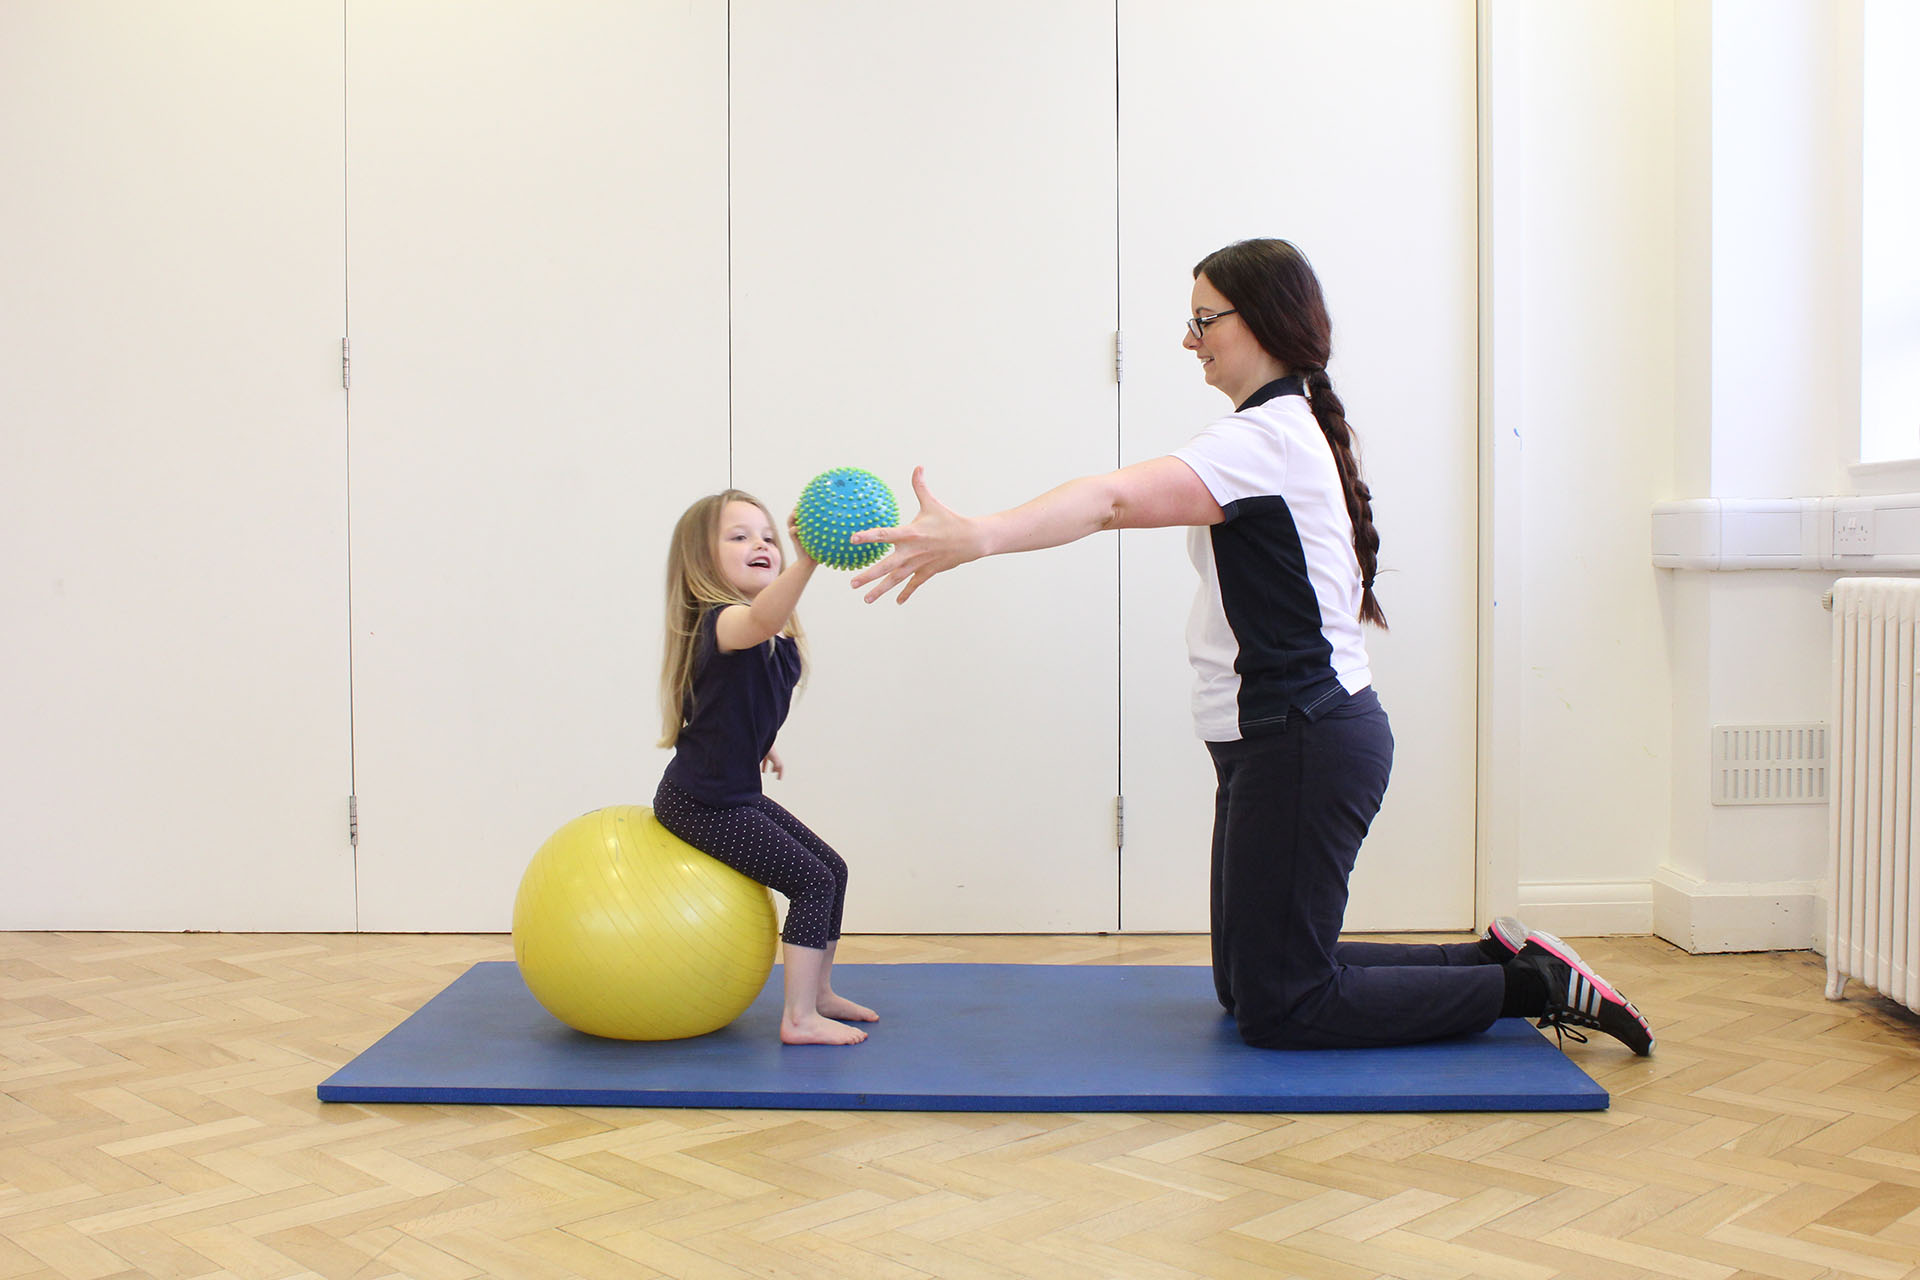 Child Physiotherapy Treatment in Manchester clinic